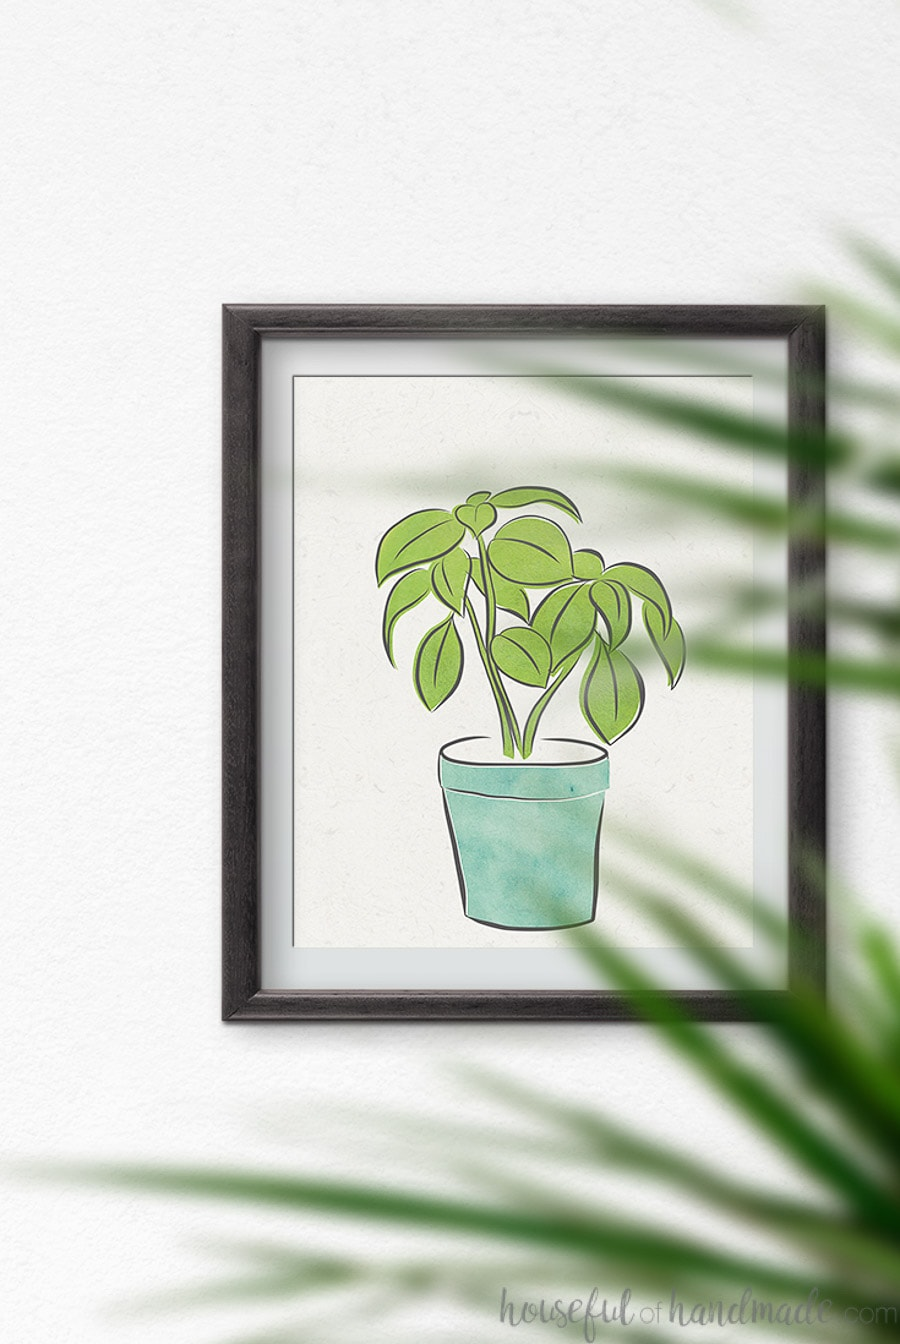 Drawing of basil in a blue pot in a frame.